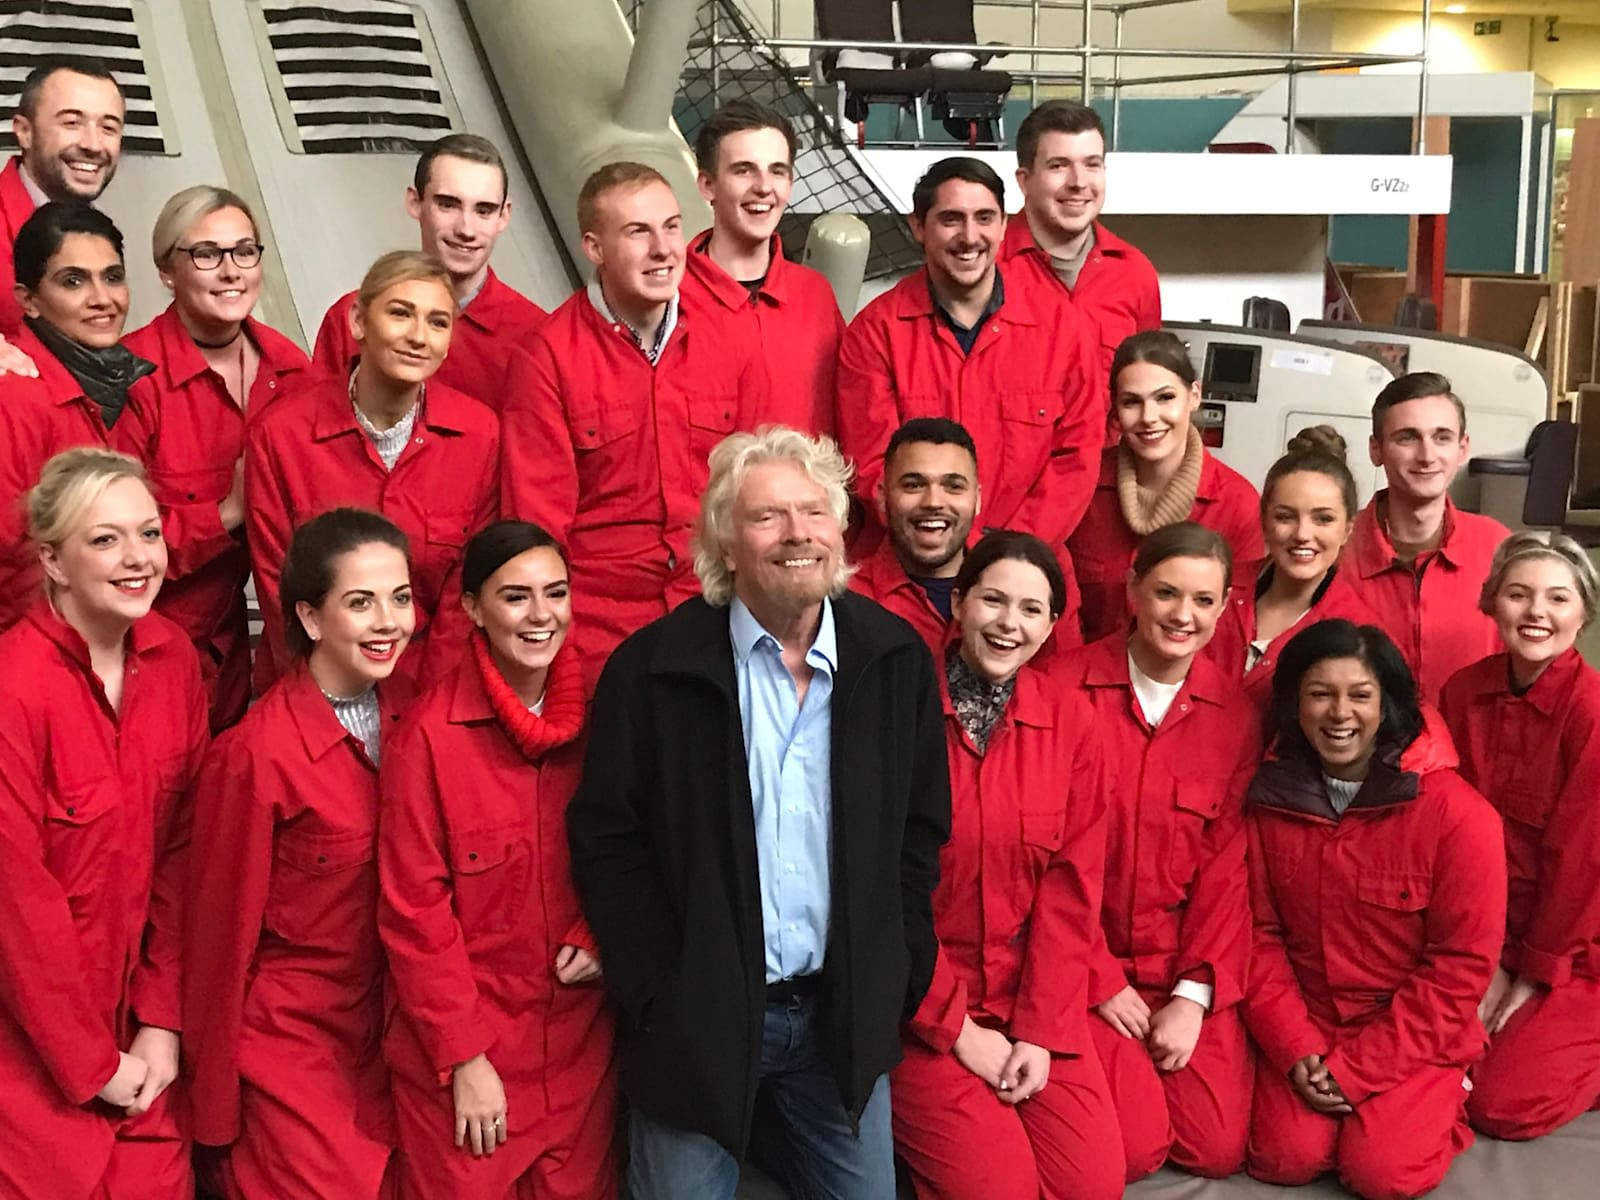 Richard Branson standing with cabin crew members after a safety drill. Cabin crew are wearing red jumpsuits. Everyone is facing the camera, smiling